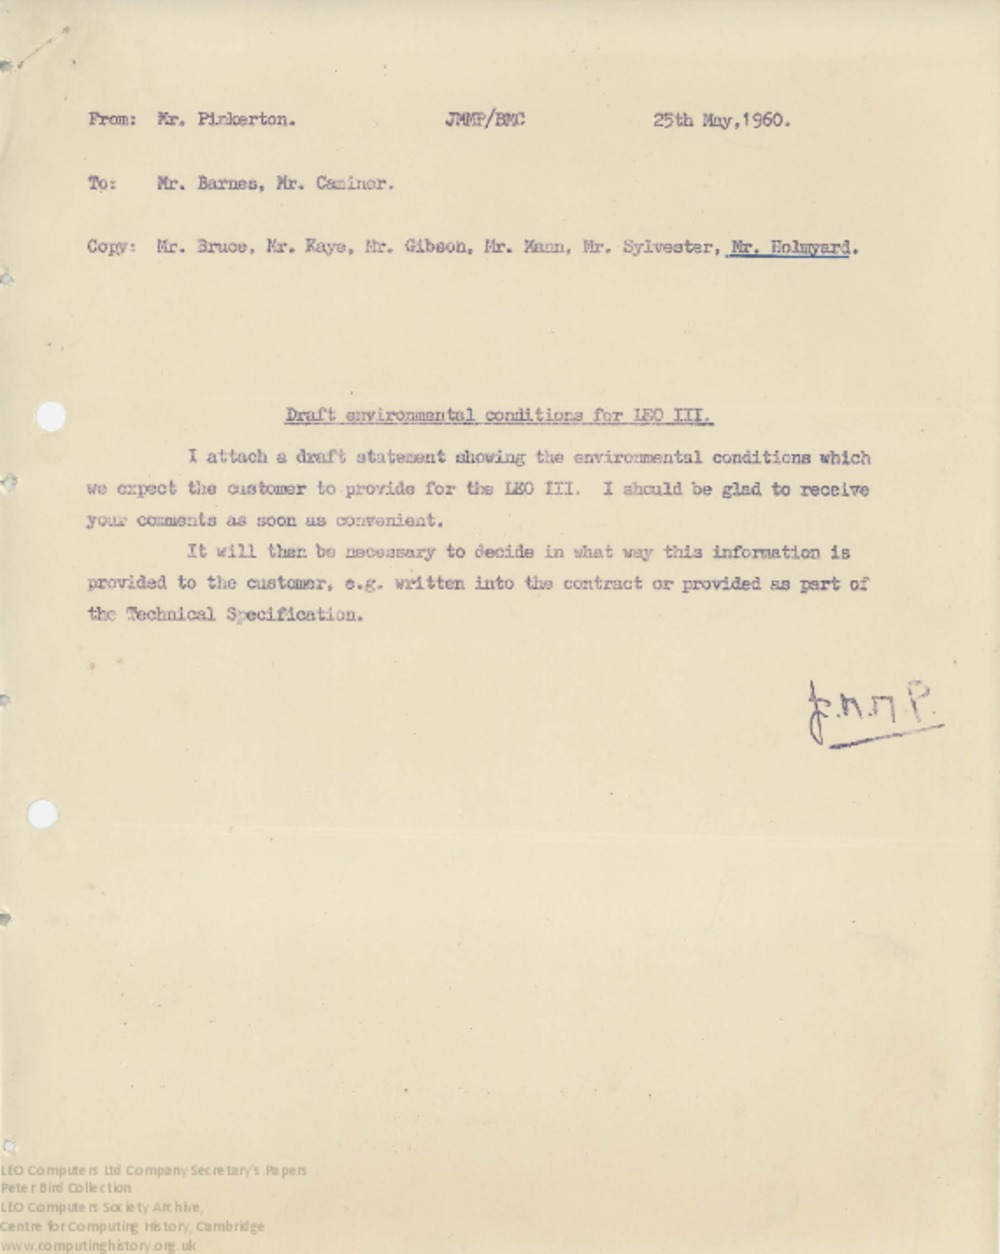 Article: 62844 Draft Recommended Environmental Conditions for LEO III, 25th May 1960